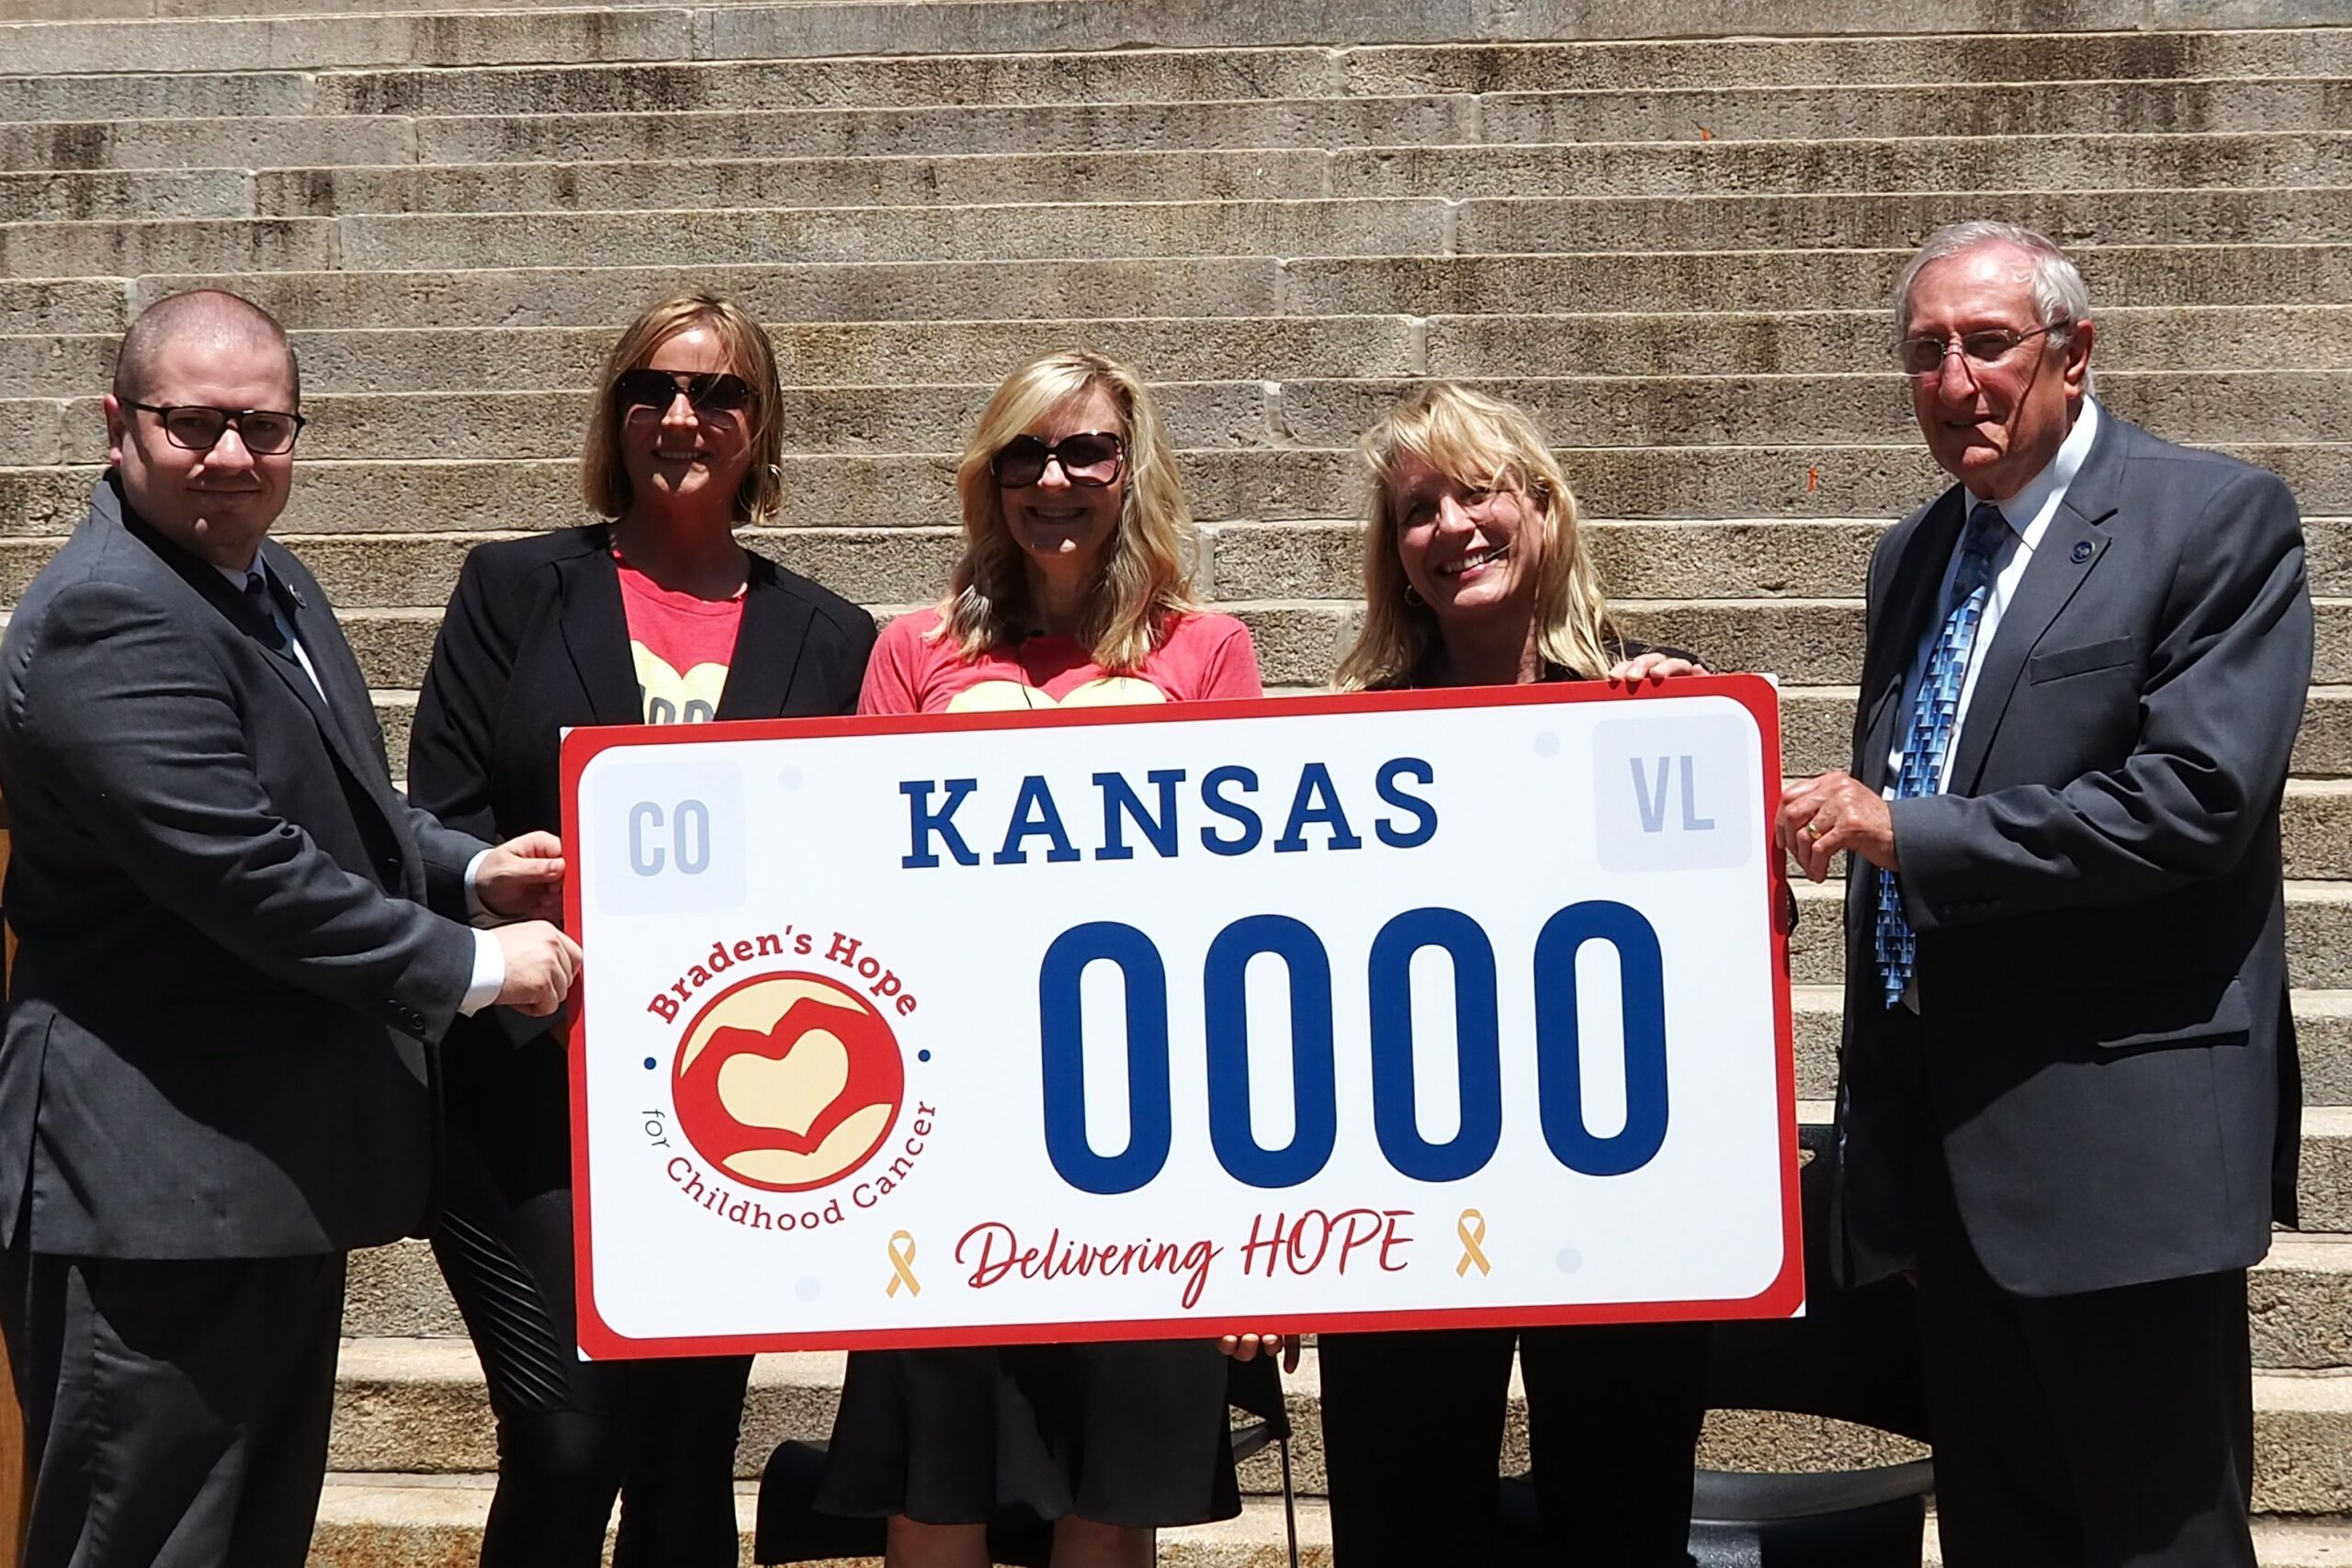 New Kansas license plate will help raise money for childhood cancer research